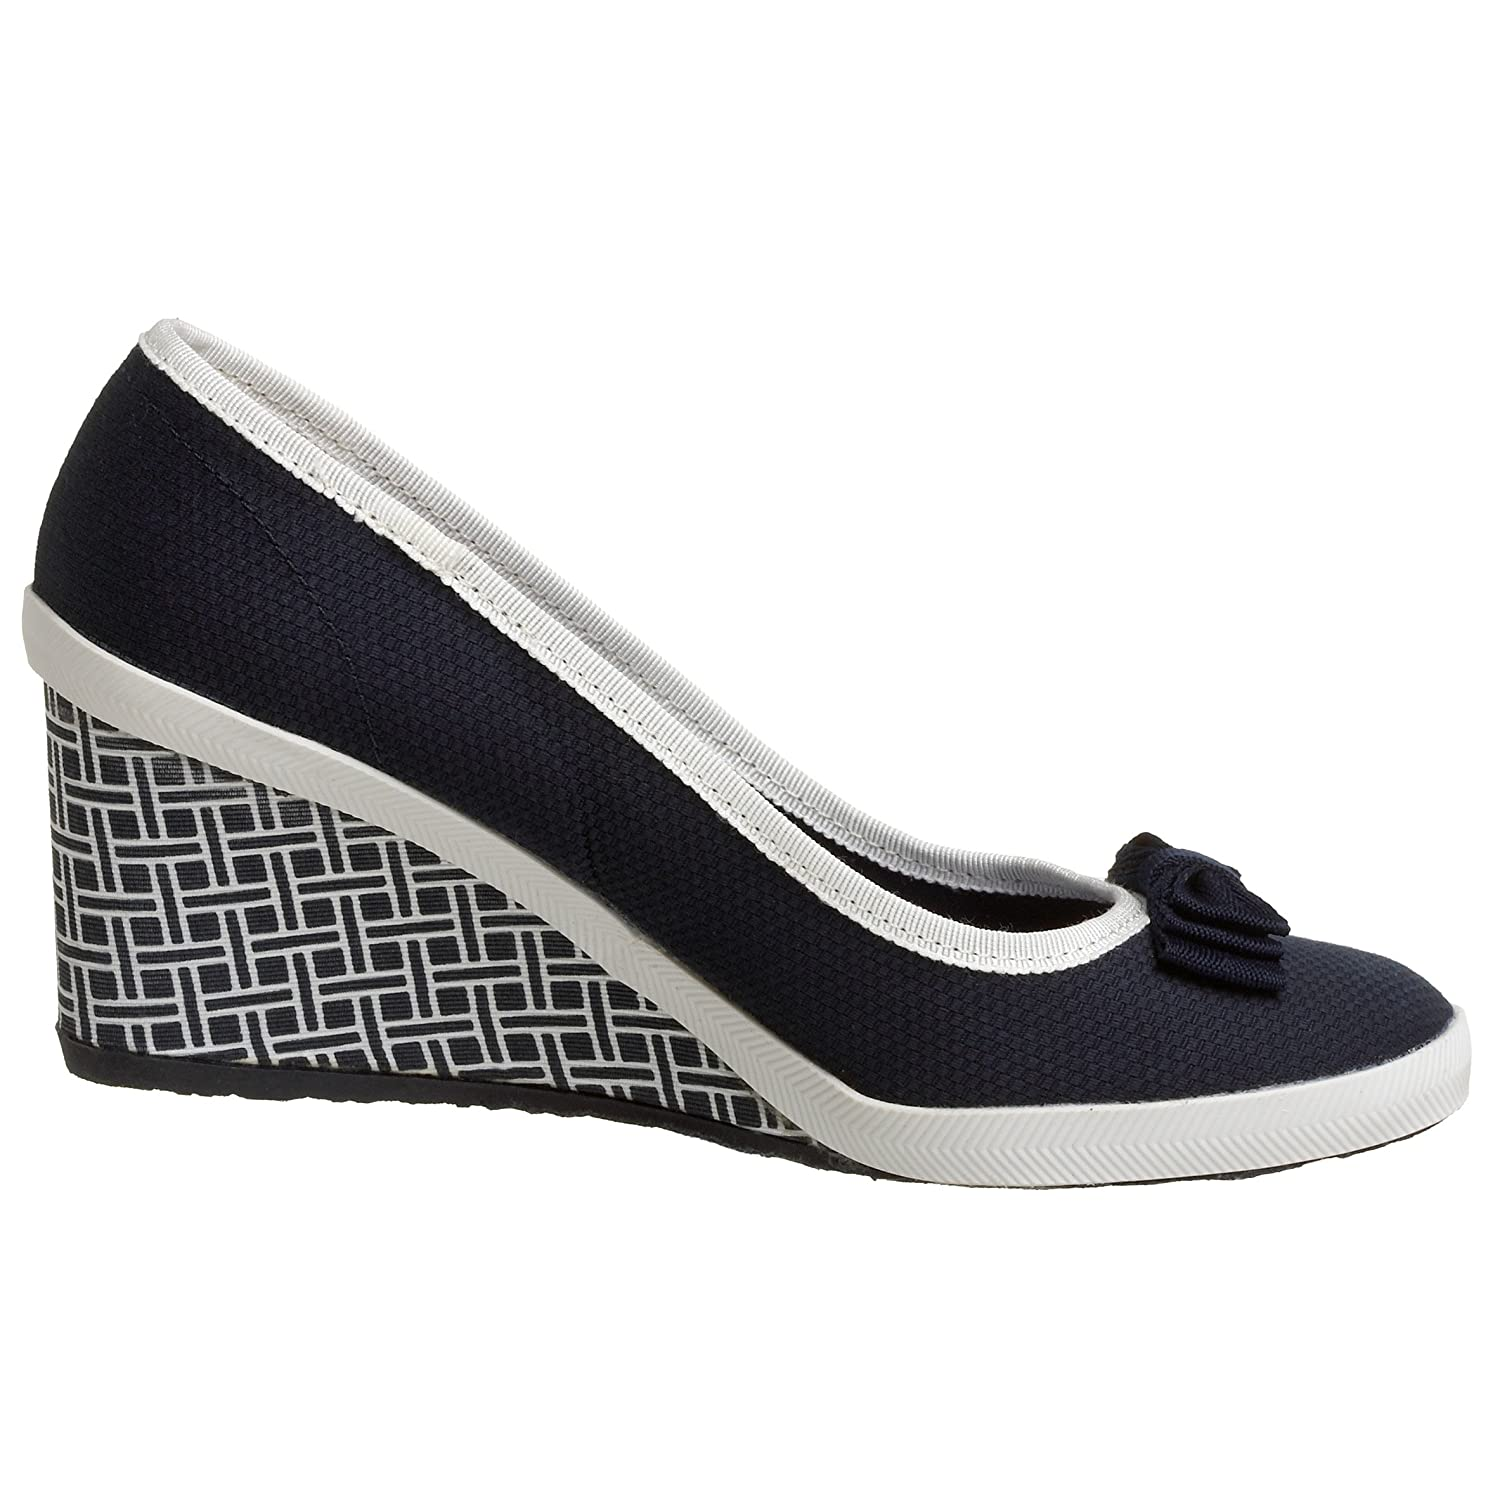 Keds Bliss Skimmer Wedge - Free Overnight Shipping & Return Shipping: Endless.com :  shoes skimmer grosgrain pattern